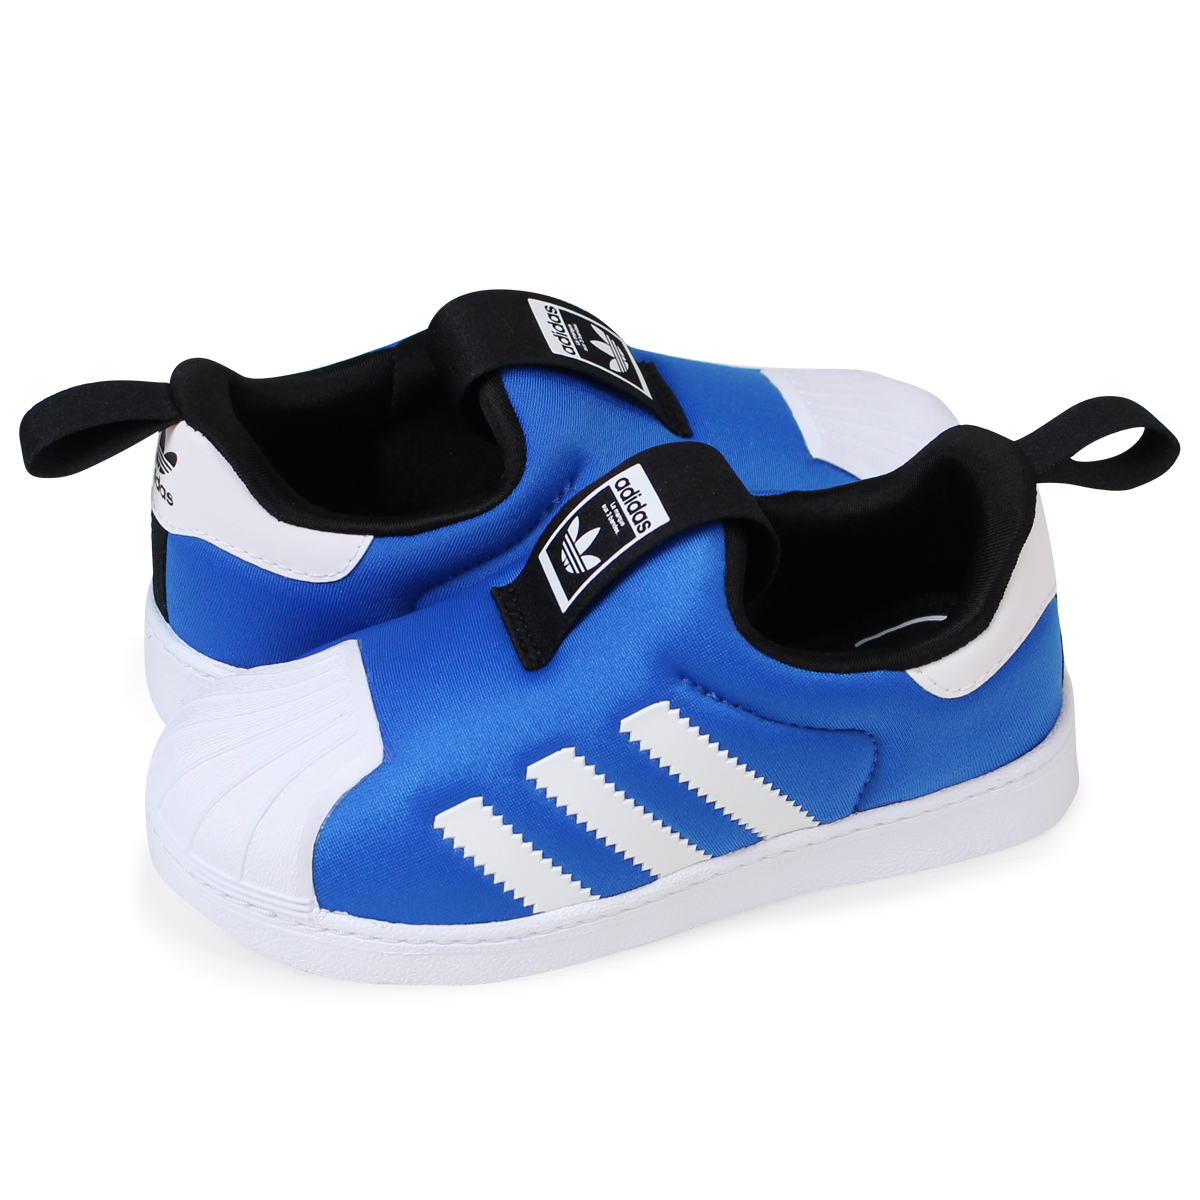 buy popular 829b3 0d8e1 Adidas superstar kids baby adidas Originals sneakers SUPERSTAR 360 I S74740 child  shoes denim  load planned Shinnyu load in reservation product 12 7 ...